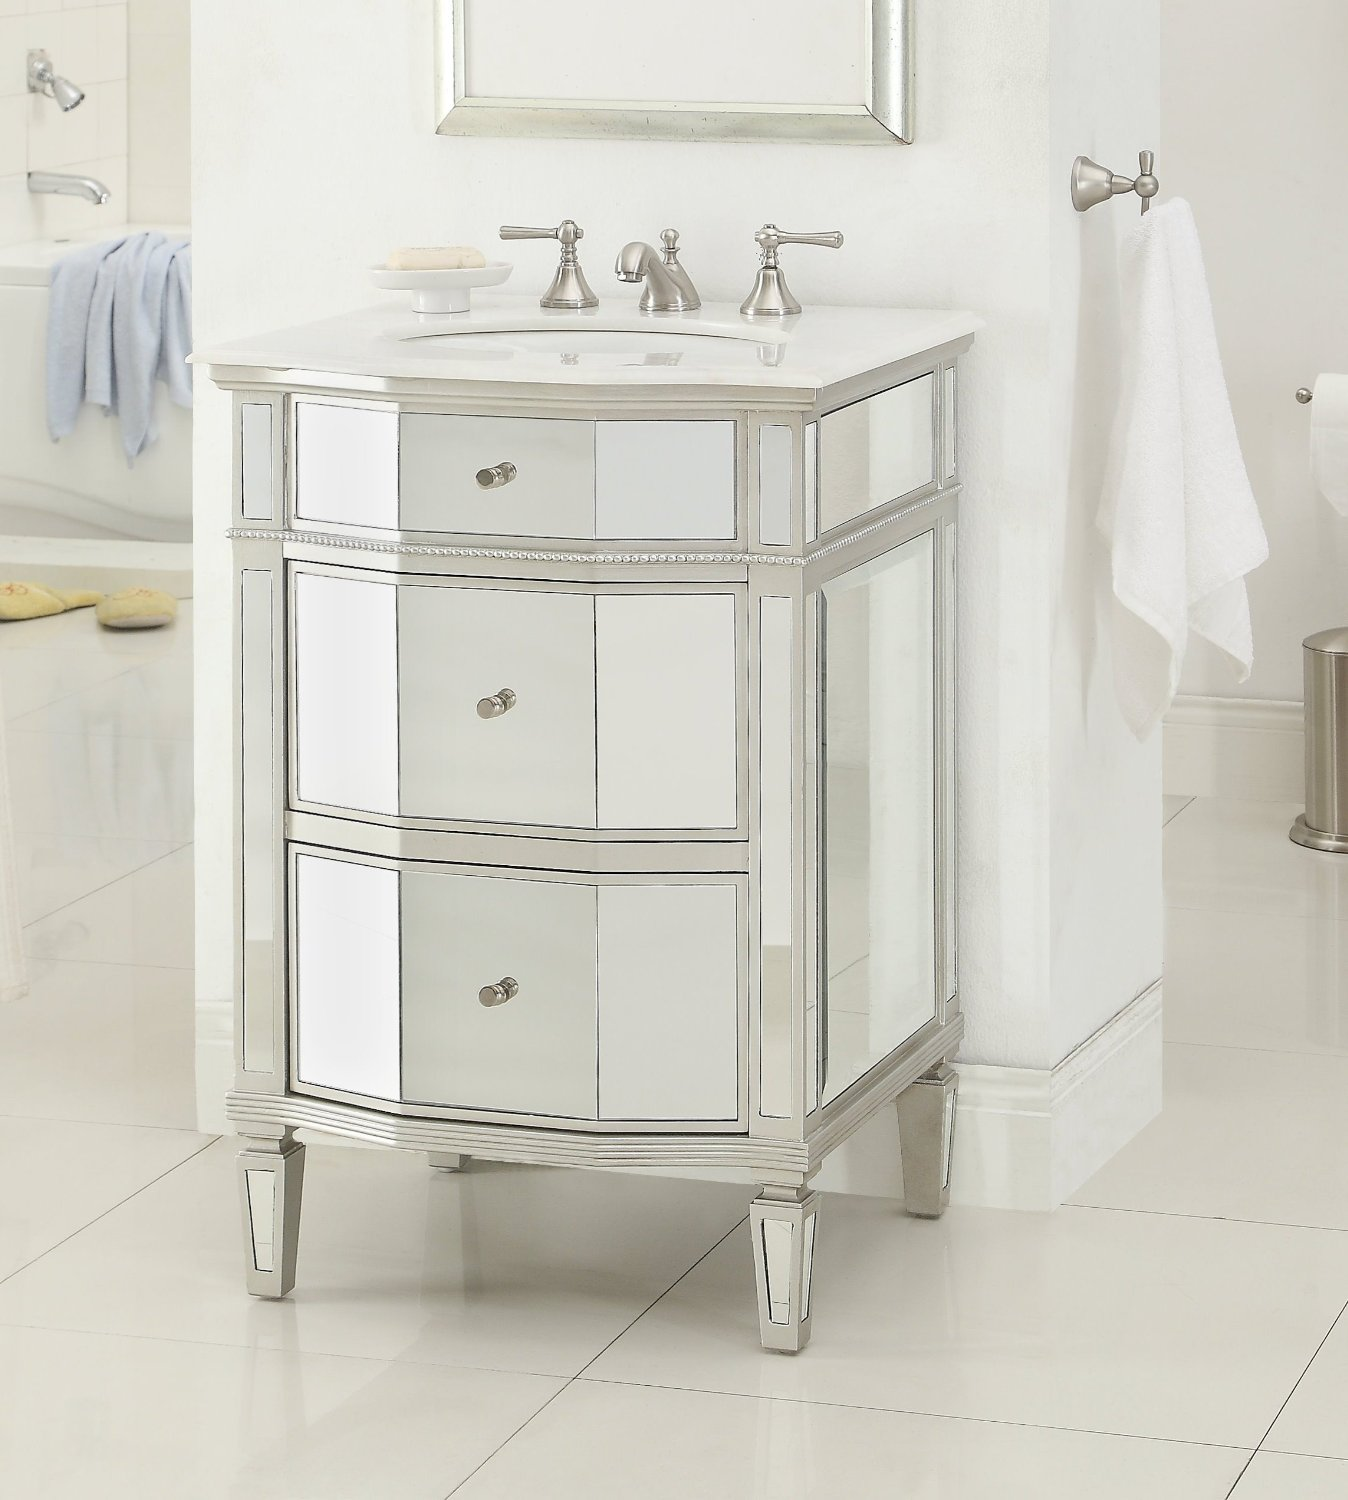 24 inch Adelina Mirrored Bathroom Vanity Marble Top